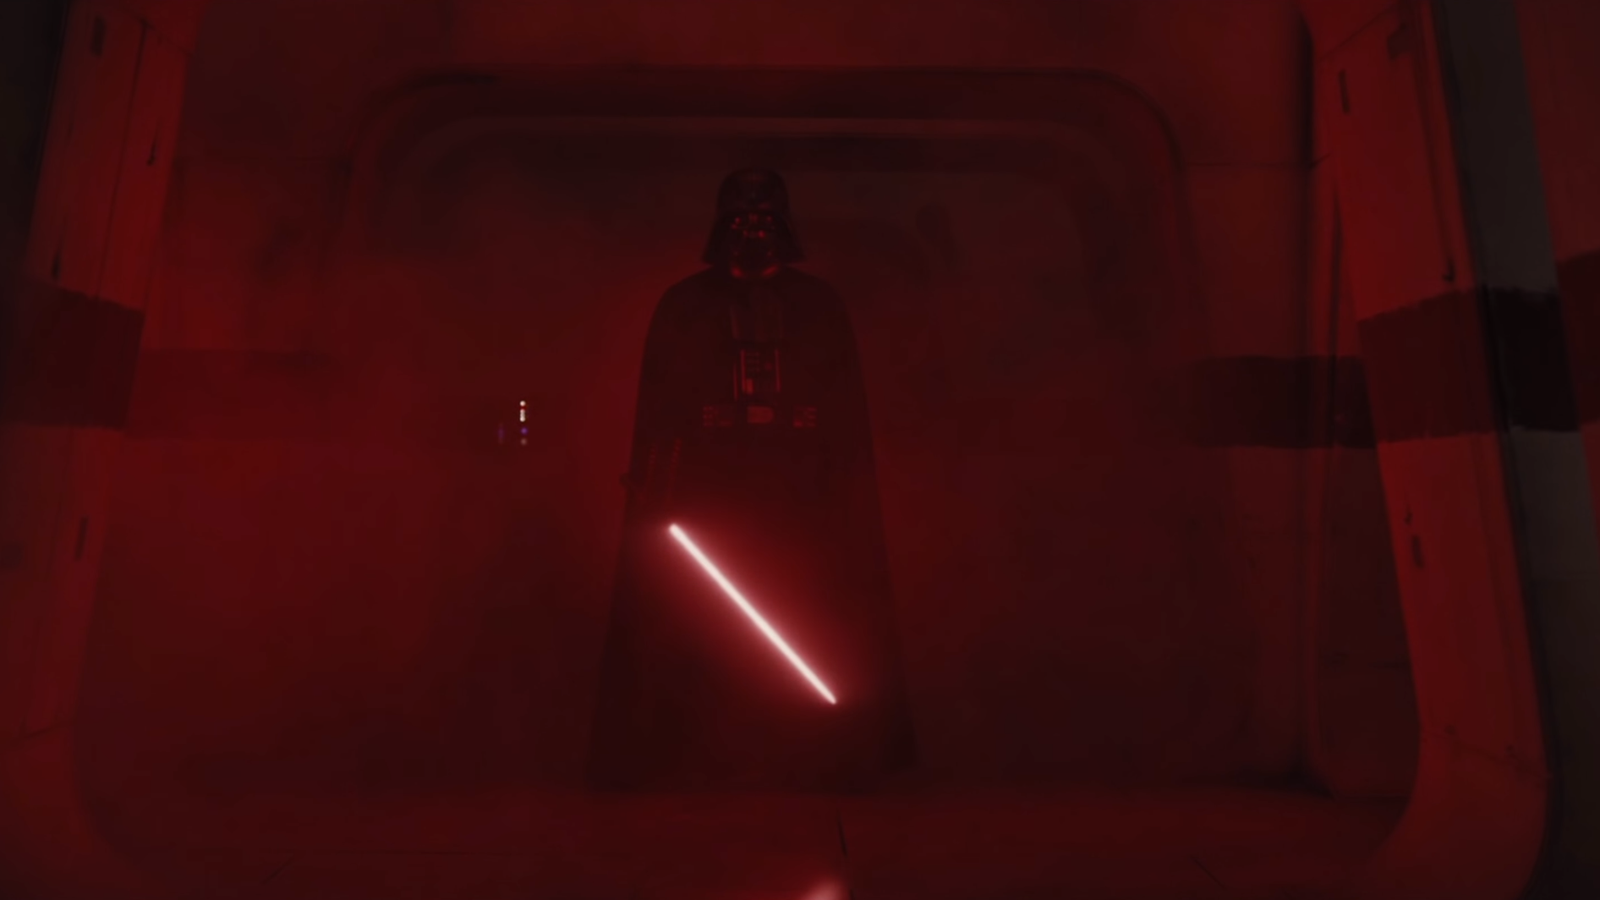 The New Era of Star Wars Has Revitalized Darth Vader in the Best, Most Frightful Way